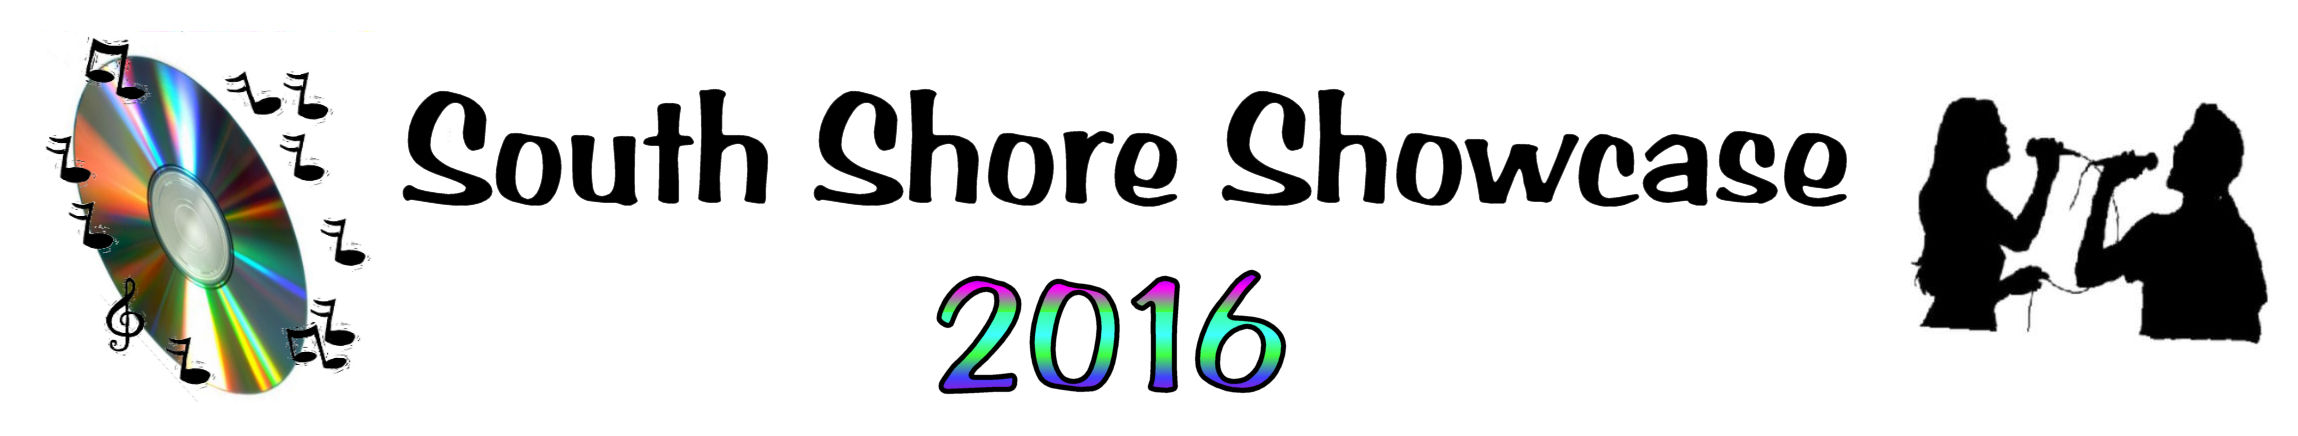 South Shore Showcase Letterhead Image